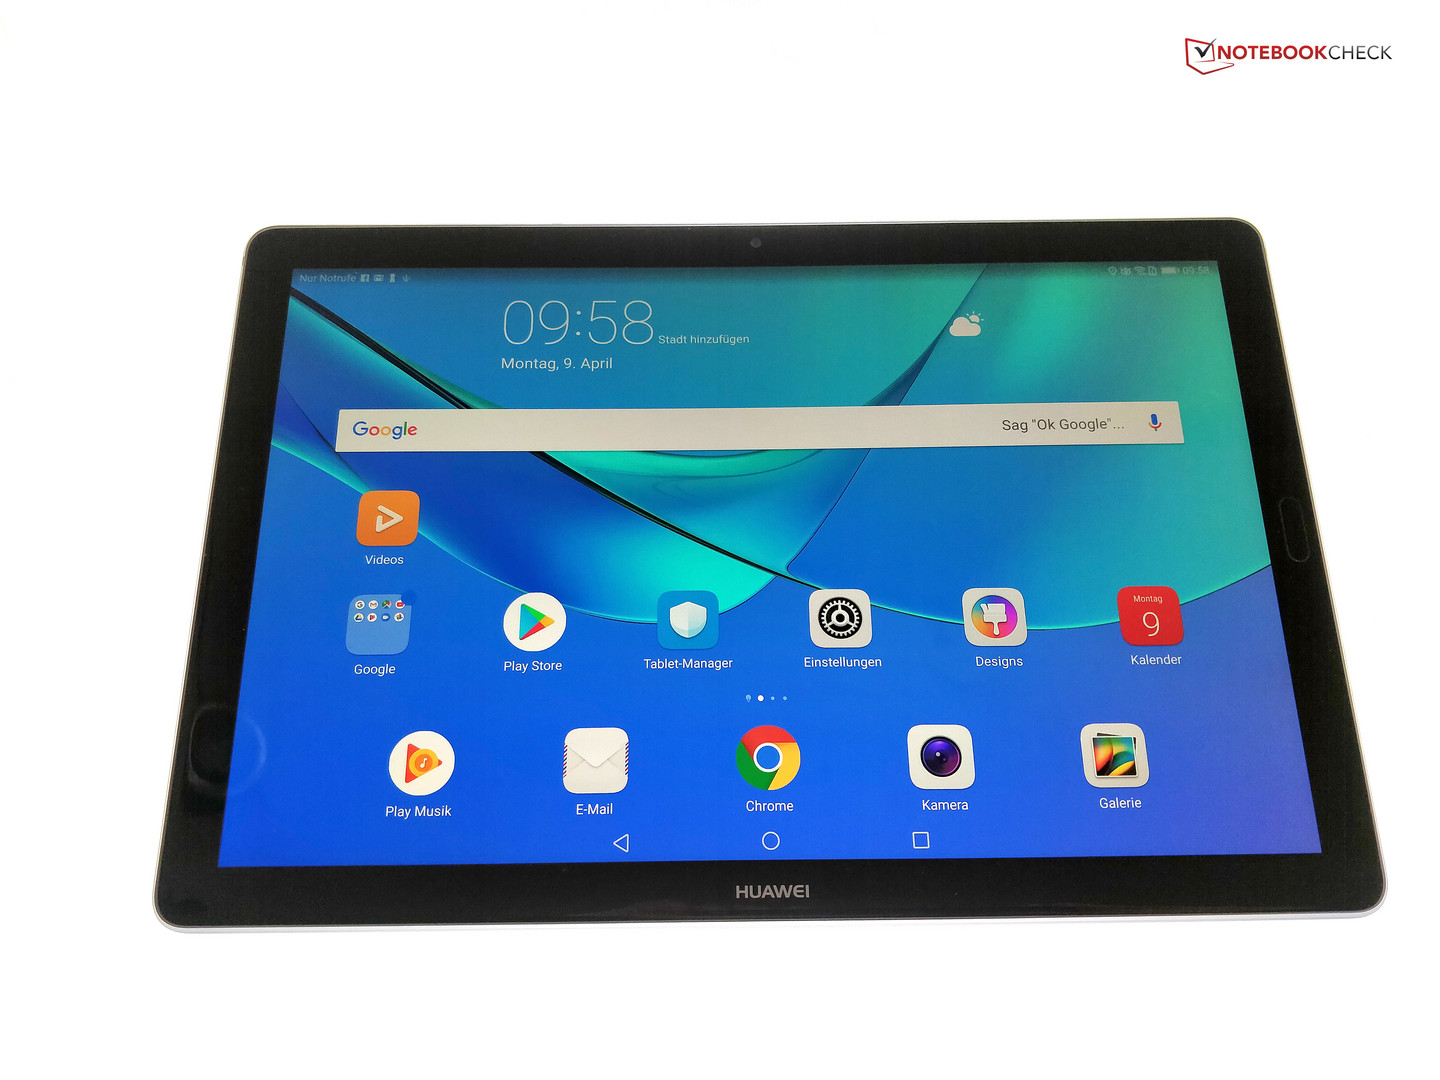 Huawei MediaPad M5 (10 8-inches, LTE) Tablet Review - NotebookCheck